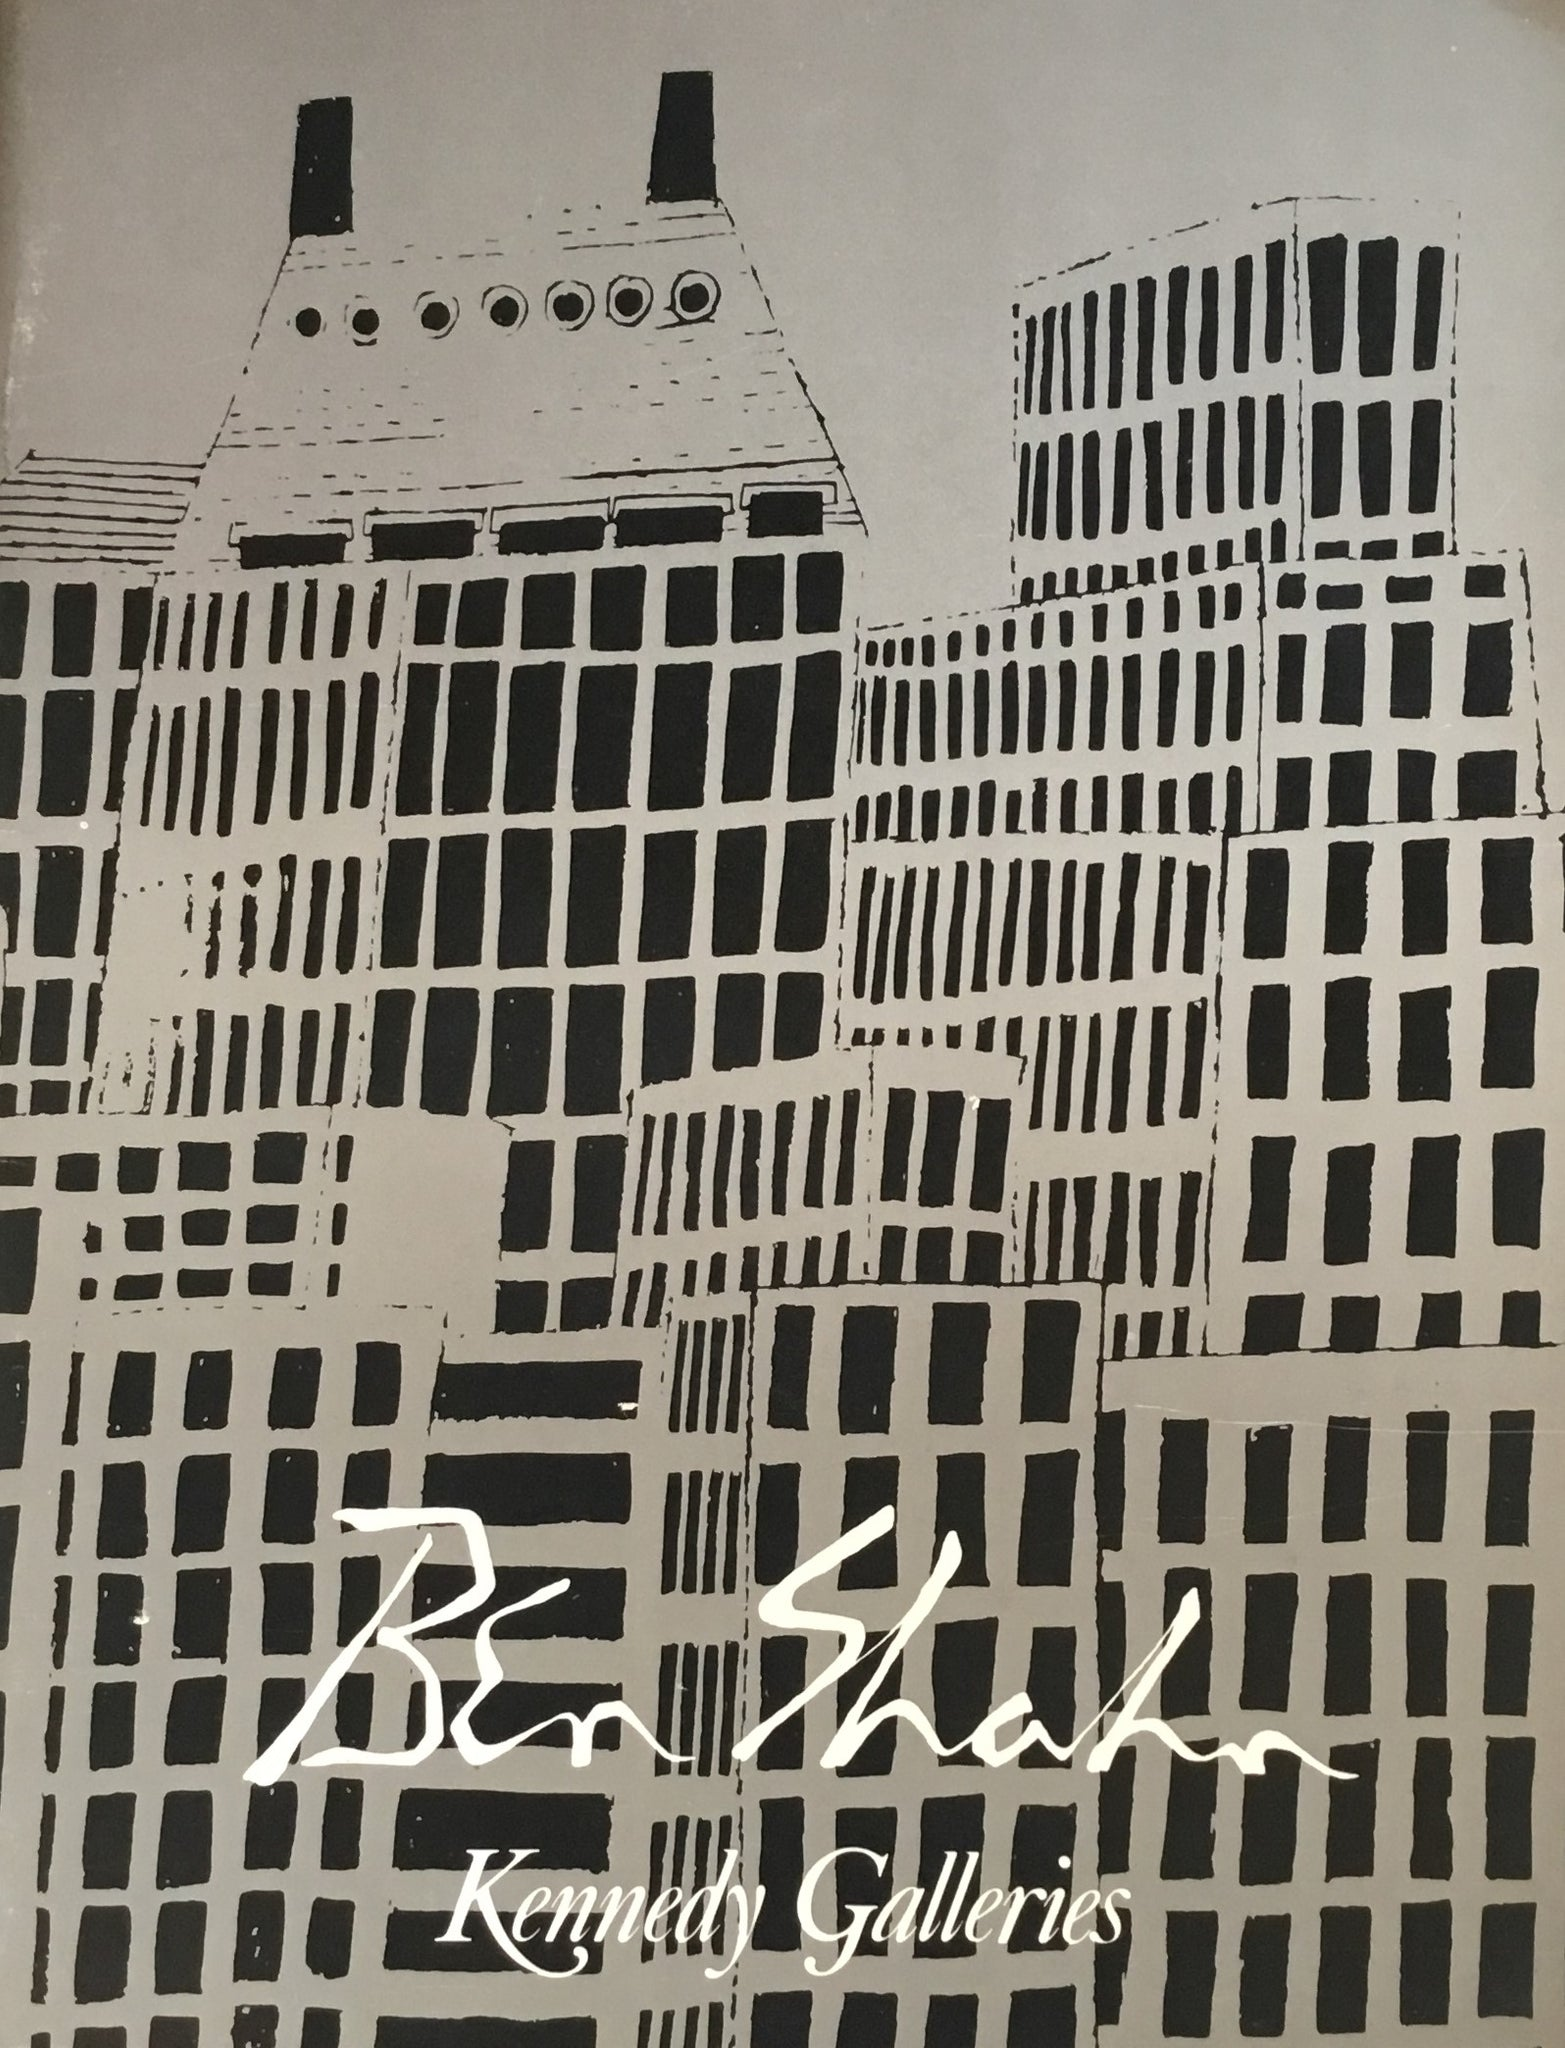 The Drawing of Ben shahn Kennedy Galleries ベン・シャーン